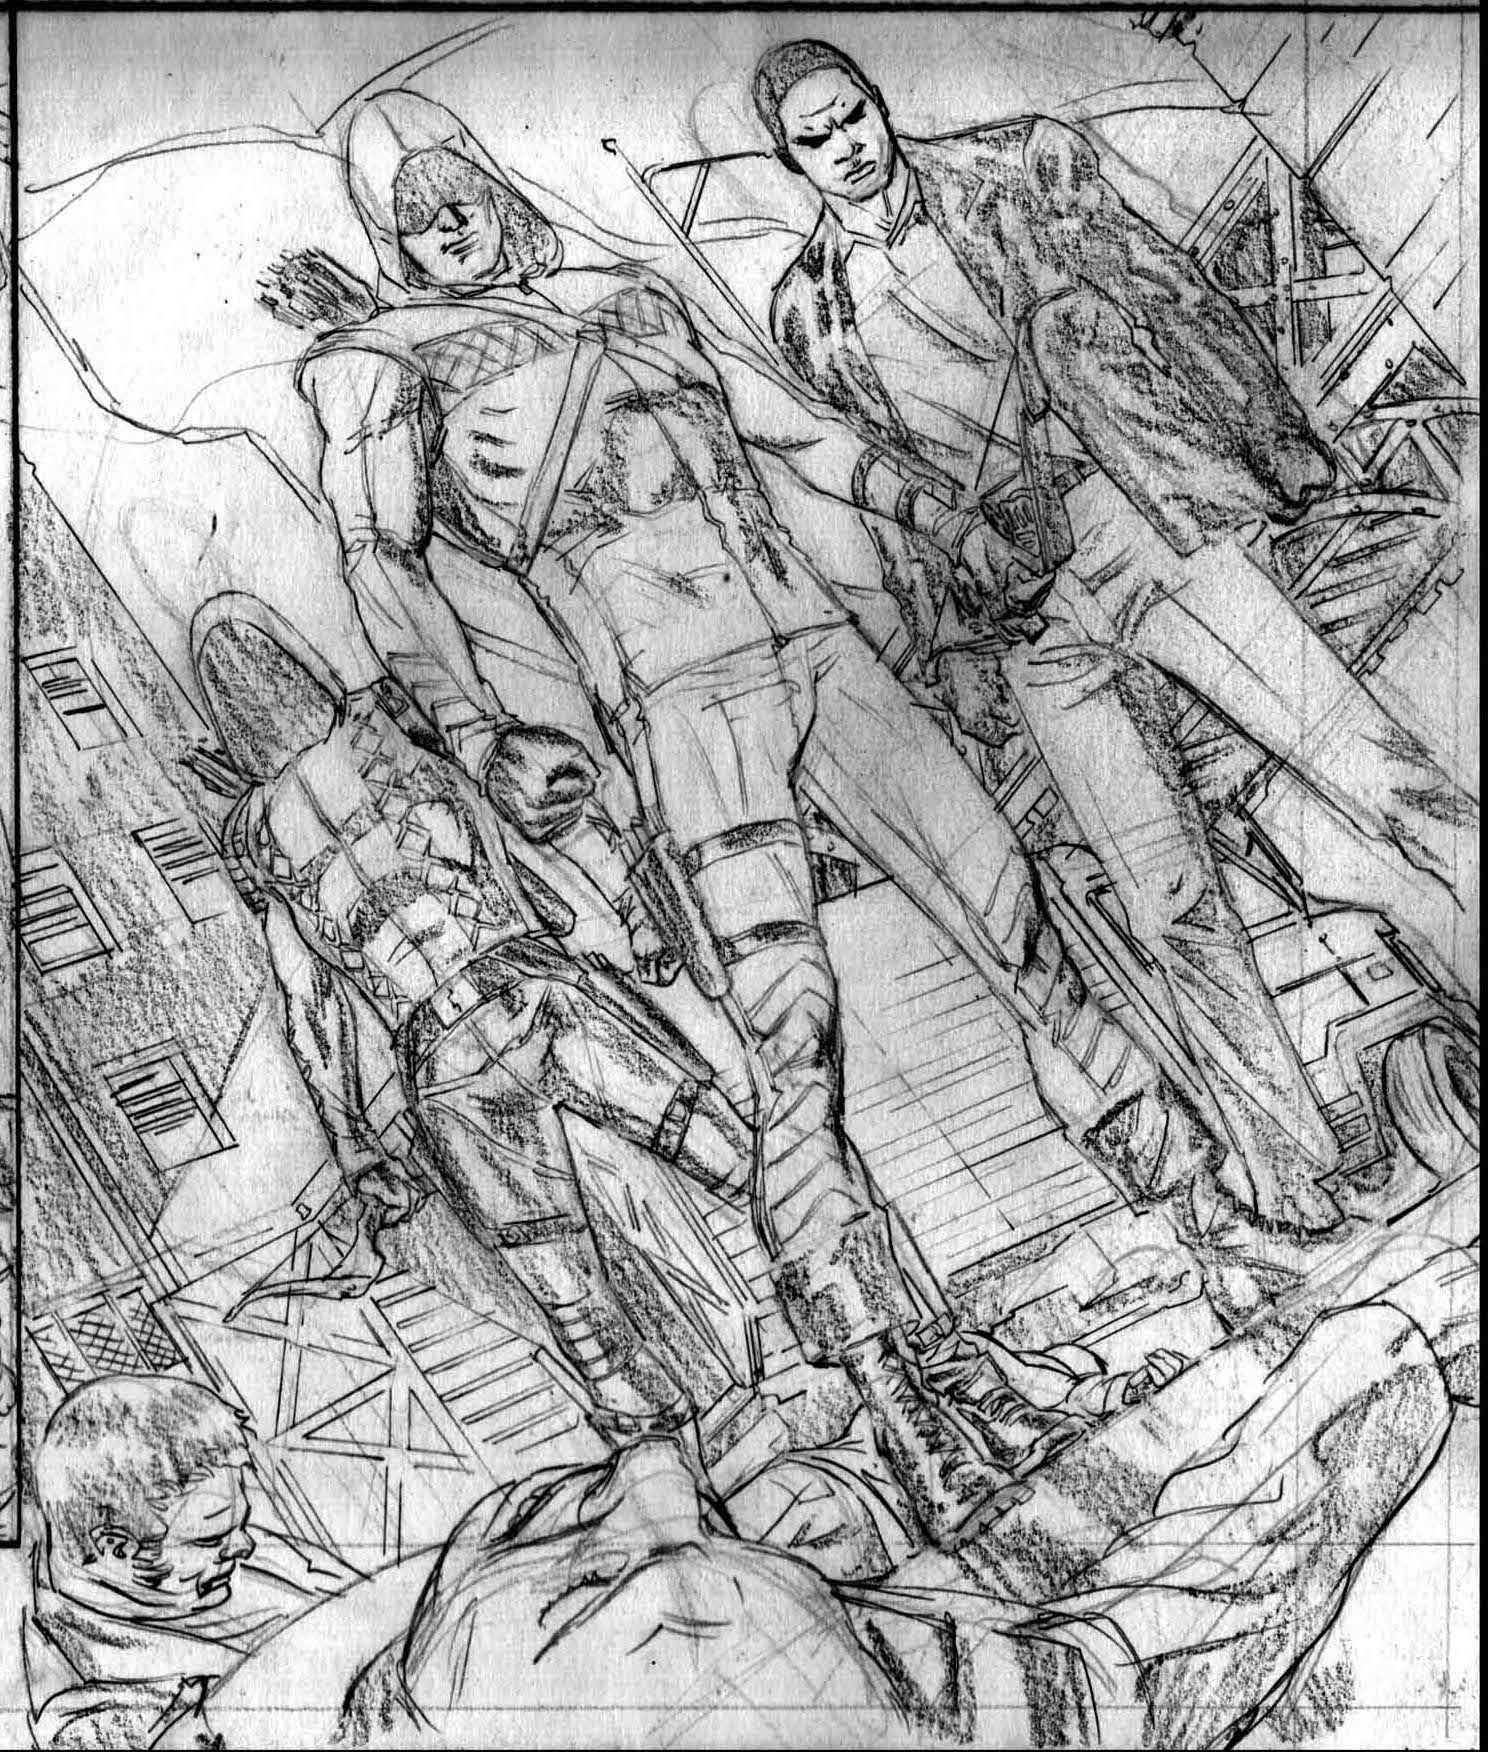 Arrow Season 2.5 - Chapter 23 - pg. 9 (Pencils).jpg